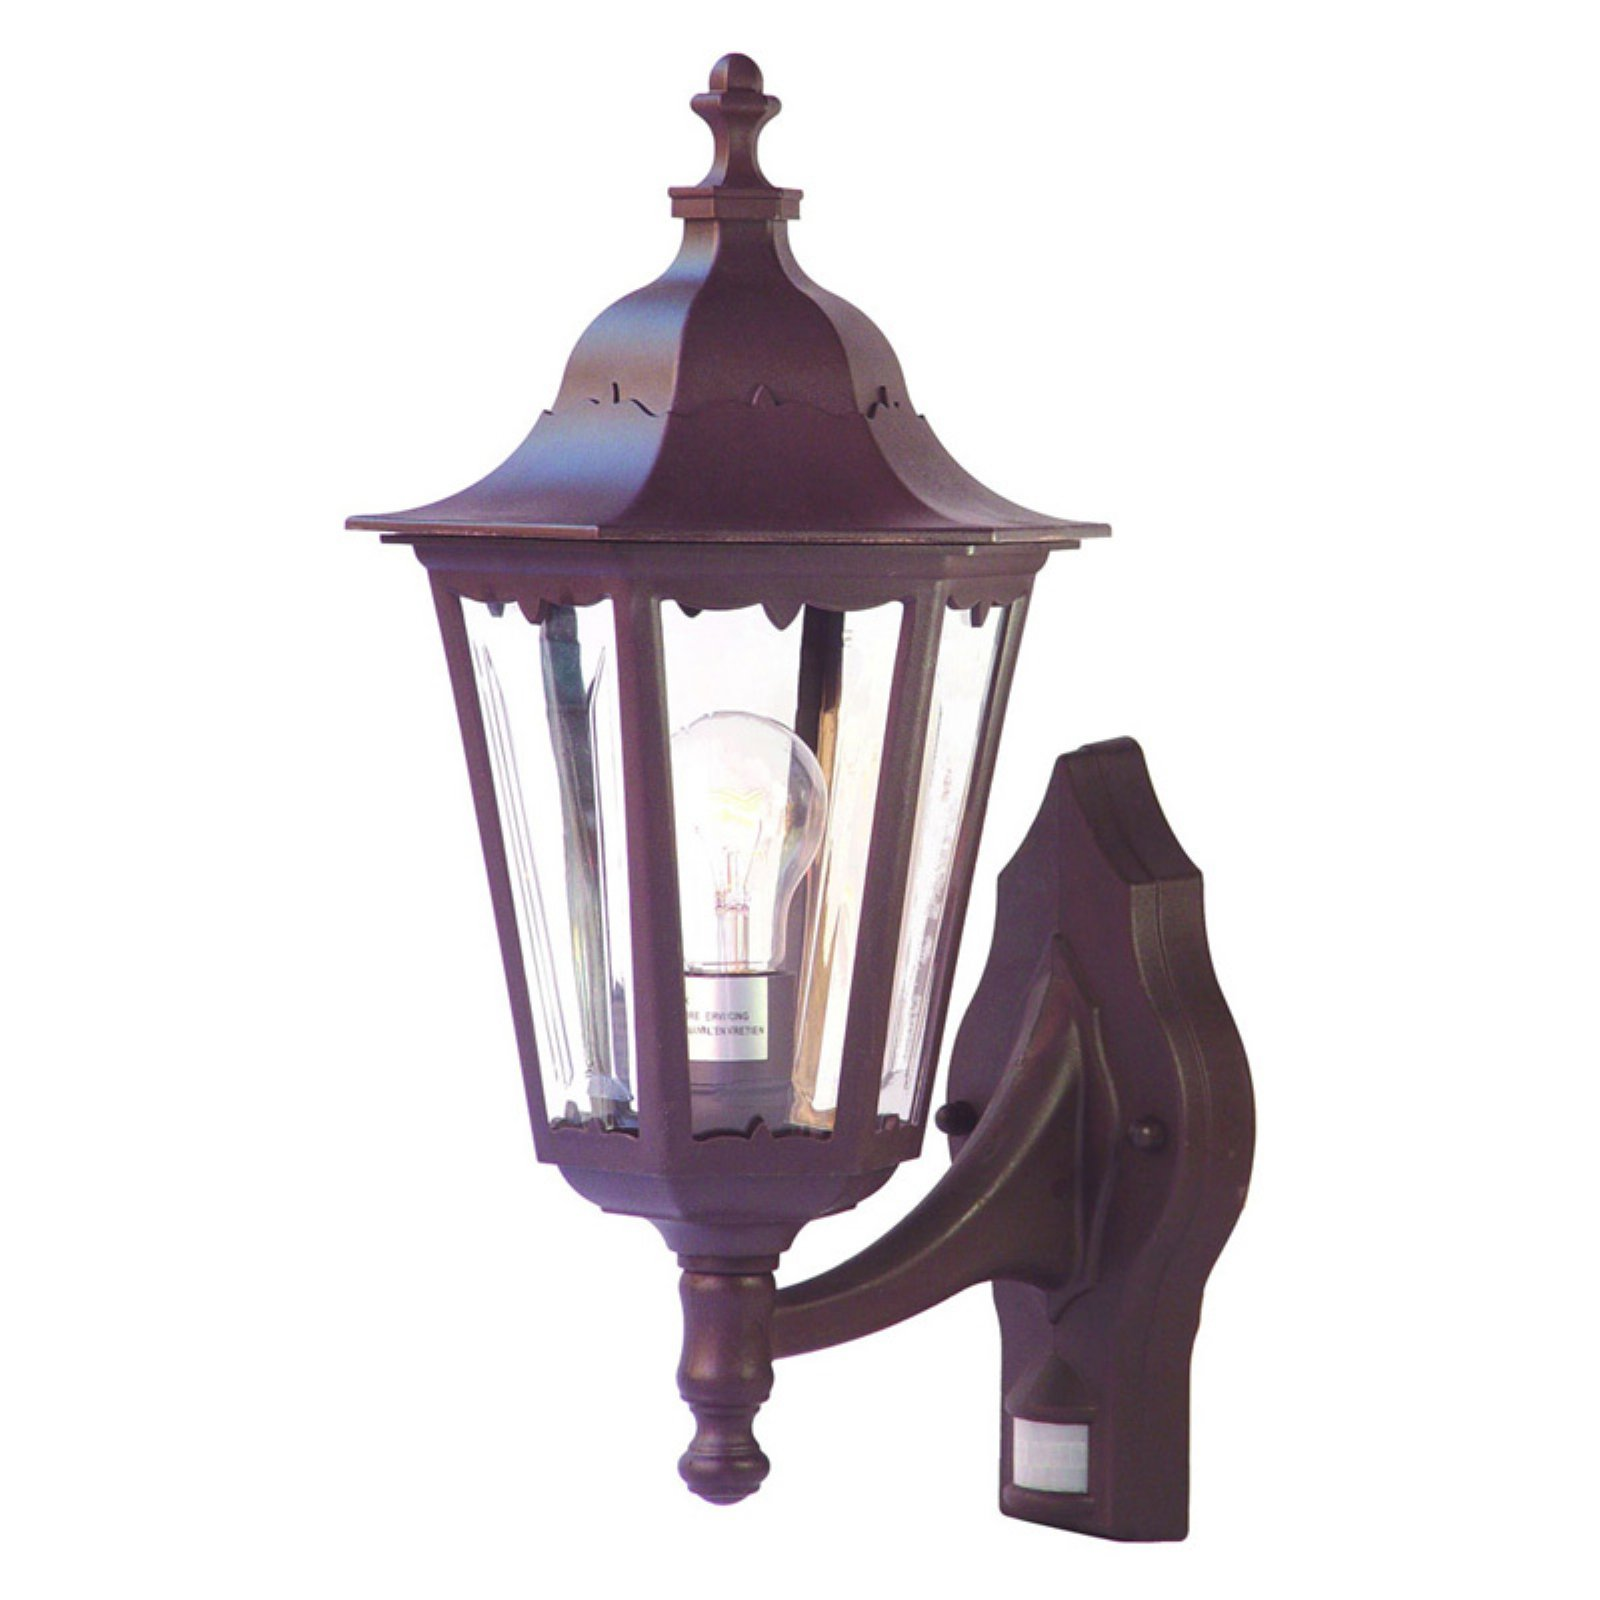 Acclaim Lighting Tidewater 1 Light 9.38 in. Outdoor Wall Mount Light Fixture